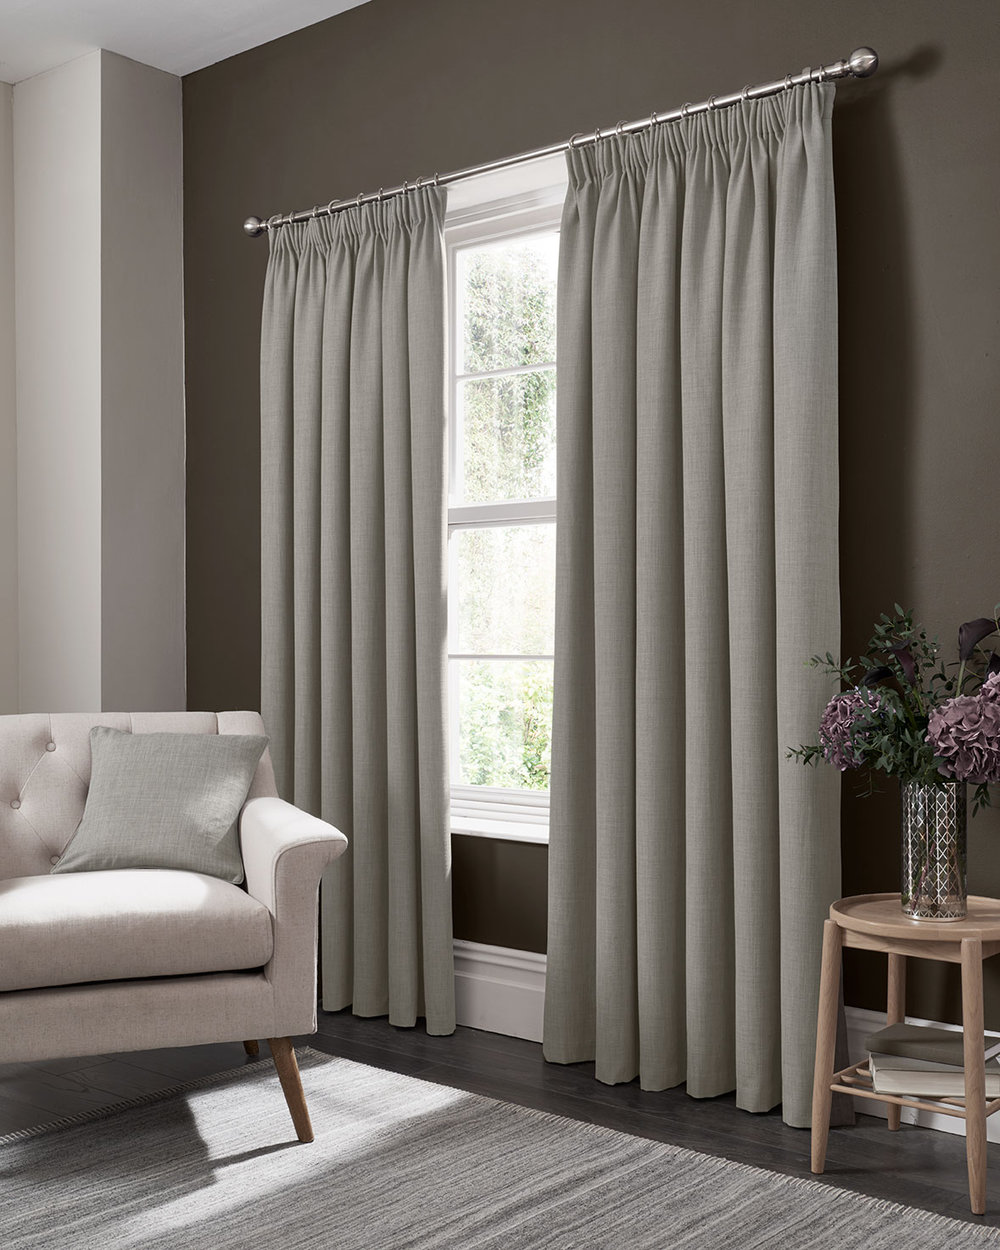 Studio G Elba Pencil Pleat Curtains Feather Ready Made Curtains - Product code: M1105/01/46X9